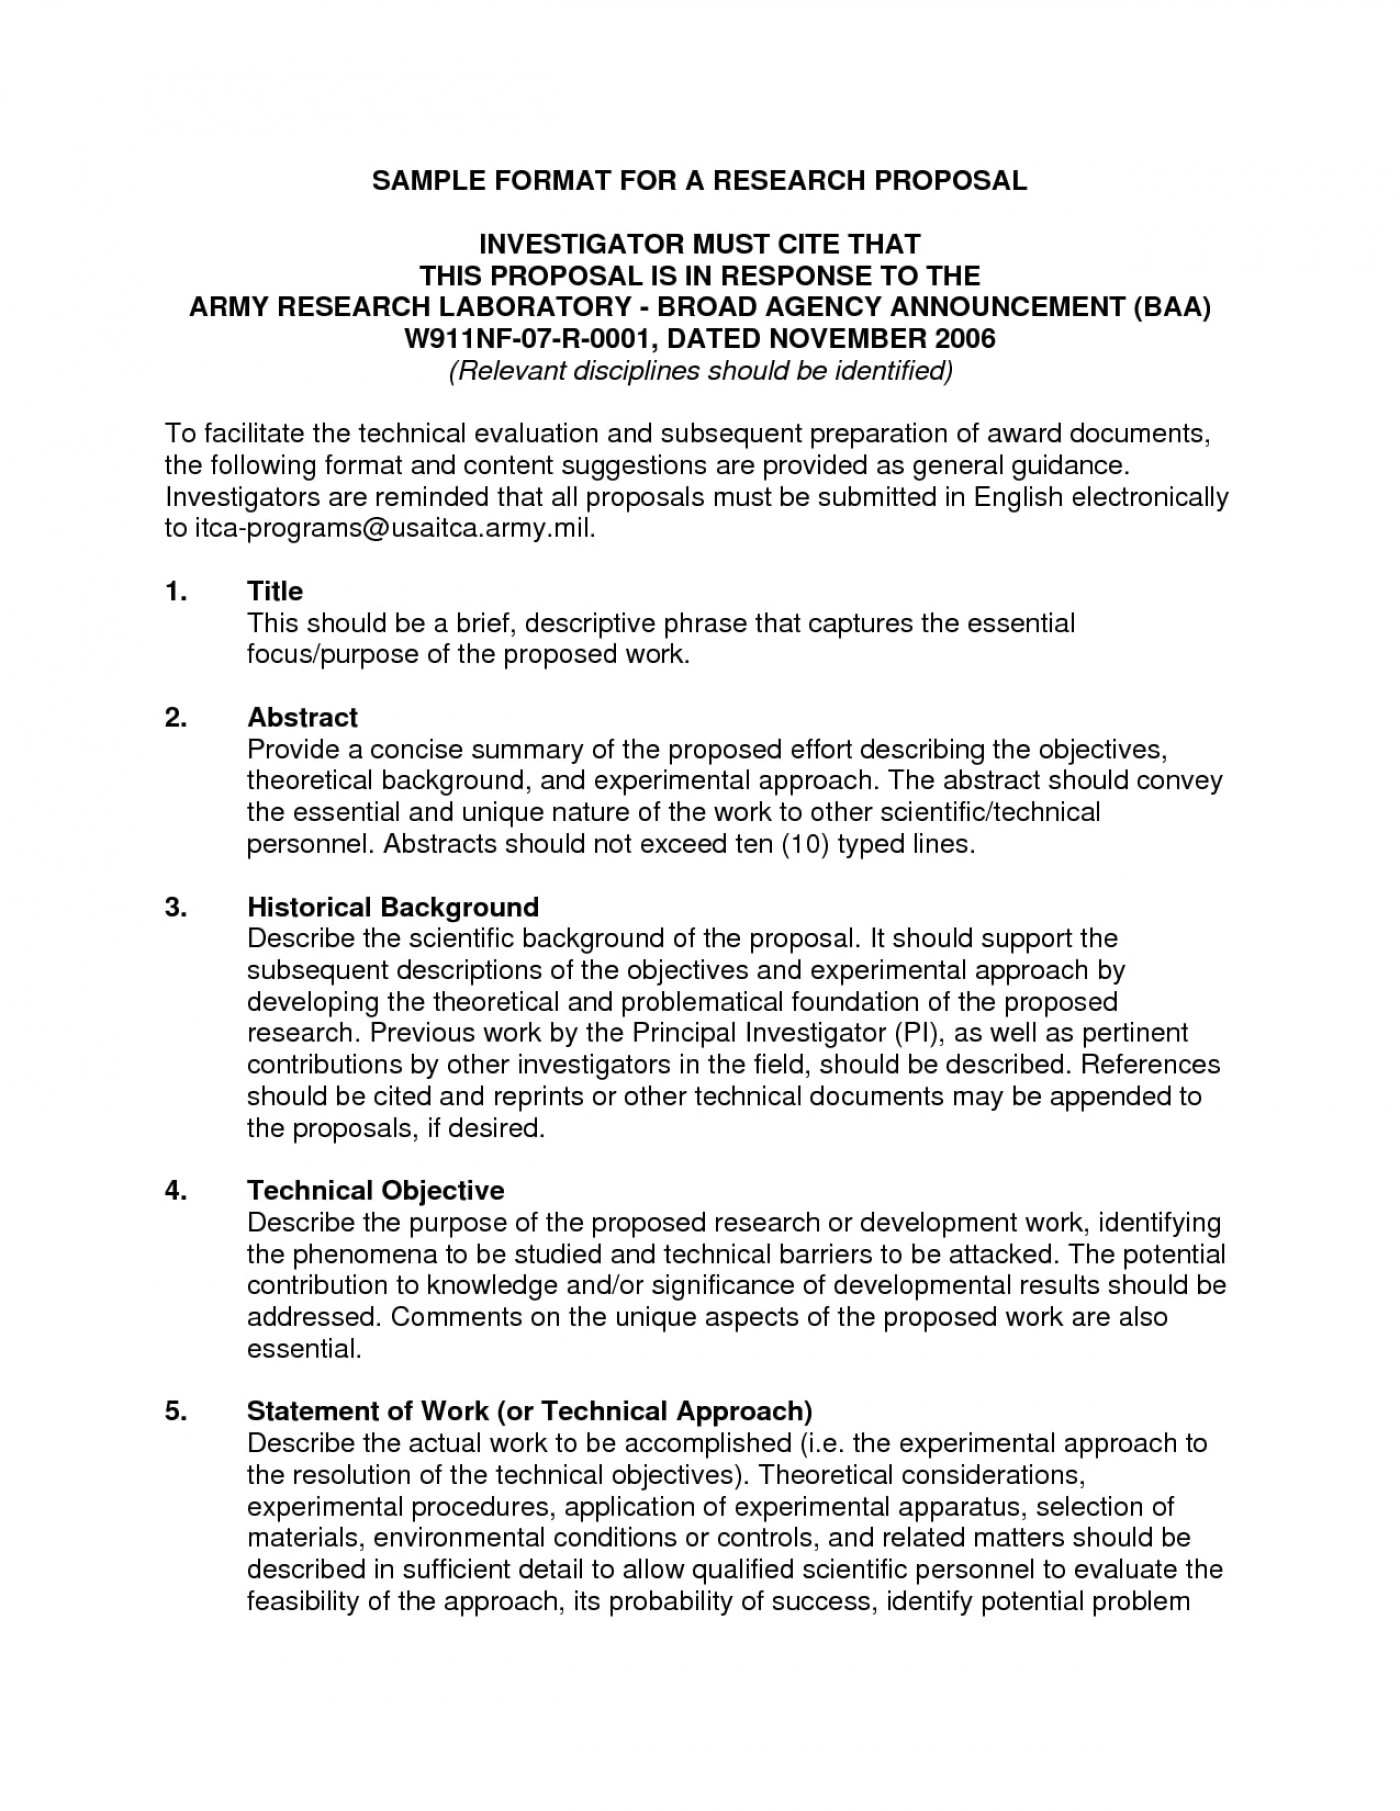 013 Research Paper Proposal Template For 6781019586 Action Sample Beautiful A Example Of Writing 1400